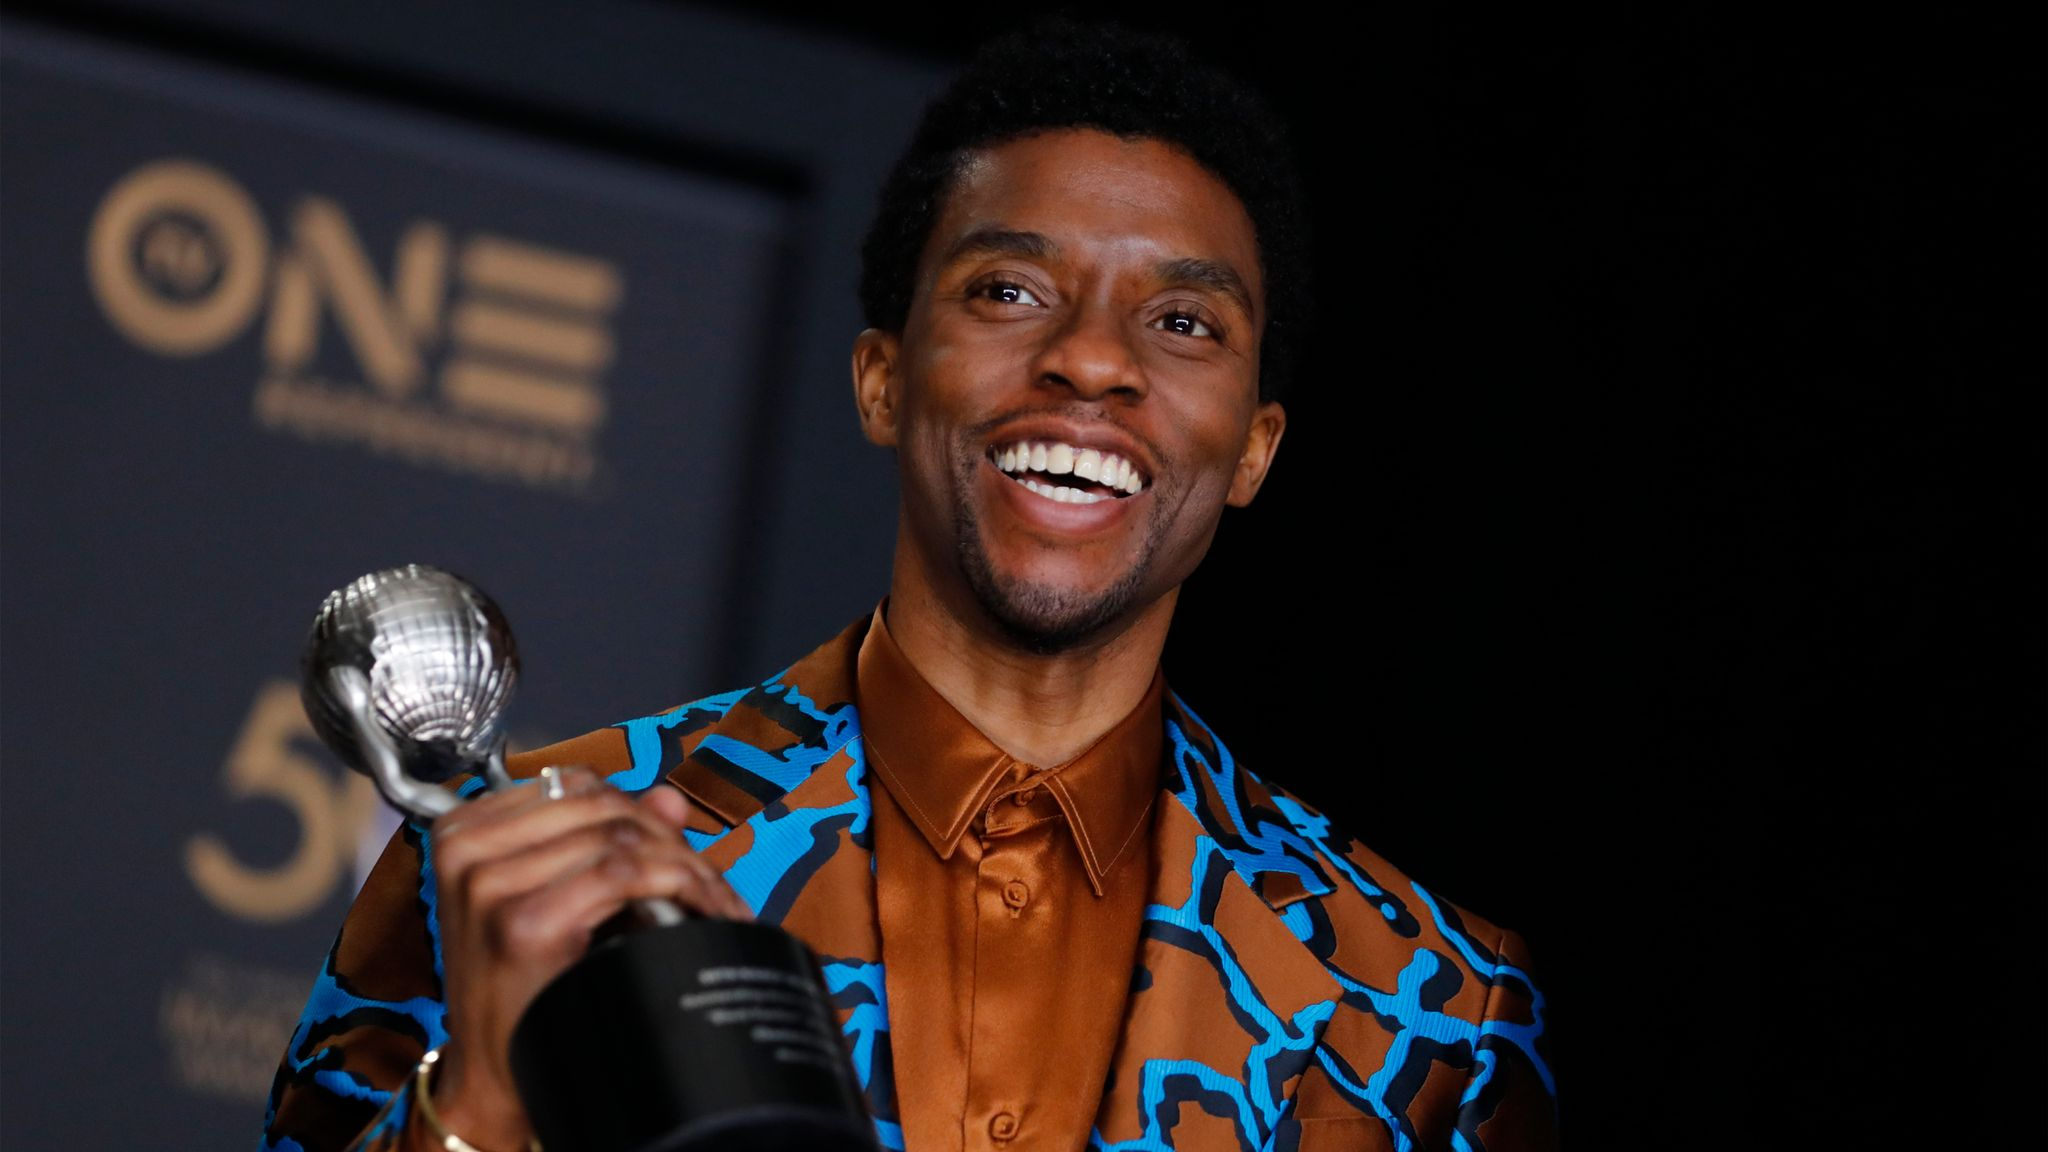 Black Panther Star Chadwick Boseman Dies After Colon Cancer Battle Ents Arts News Sky News